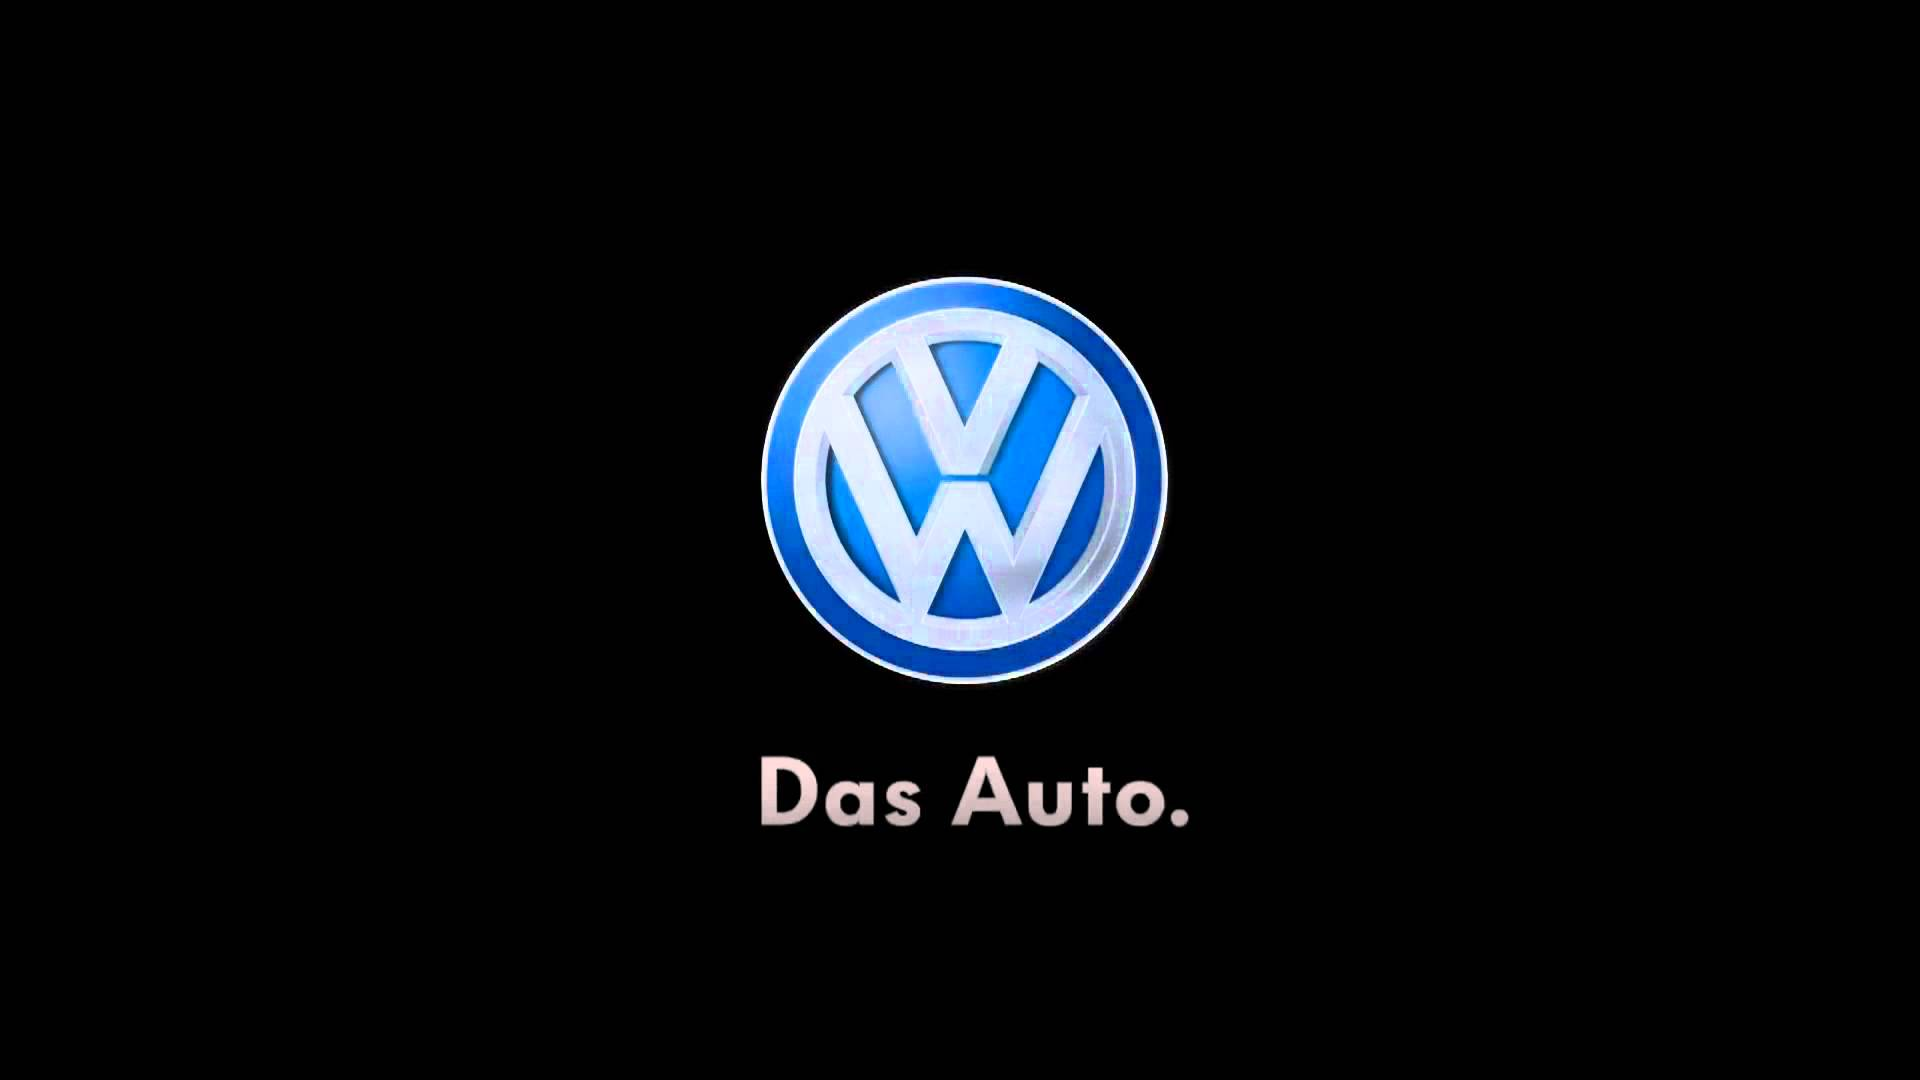 Displaying 19 Images For   Volkswagen Das Auto Logo Wallpaper 1920x1080